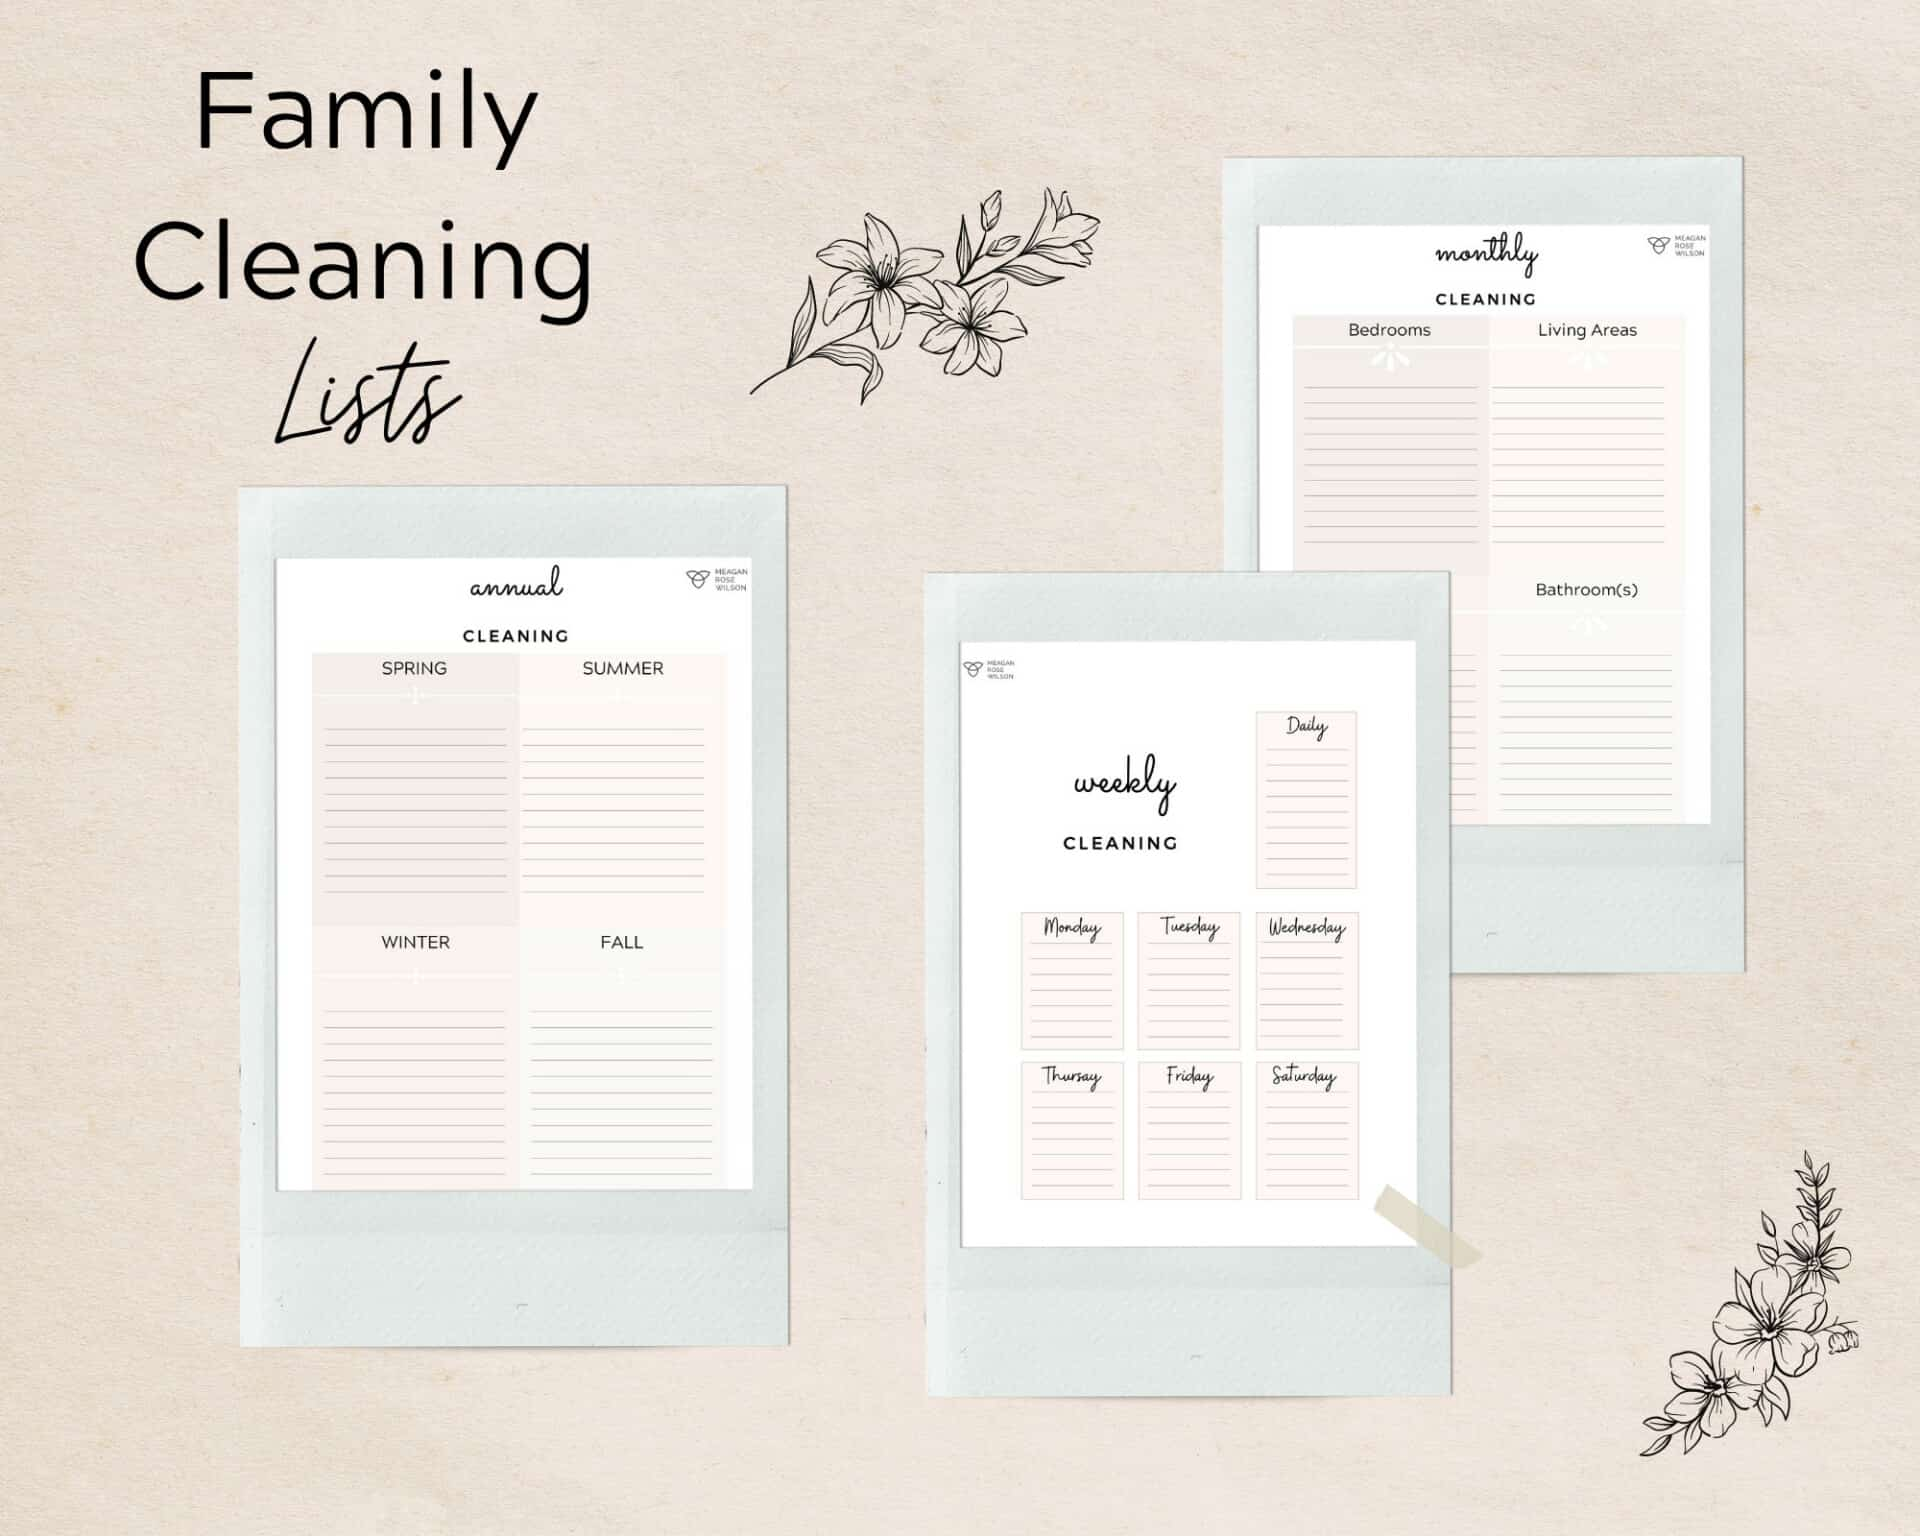 FamilyCleaningCover